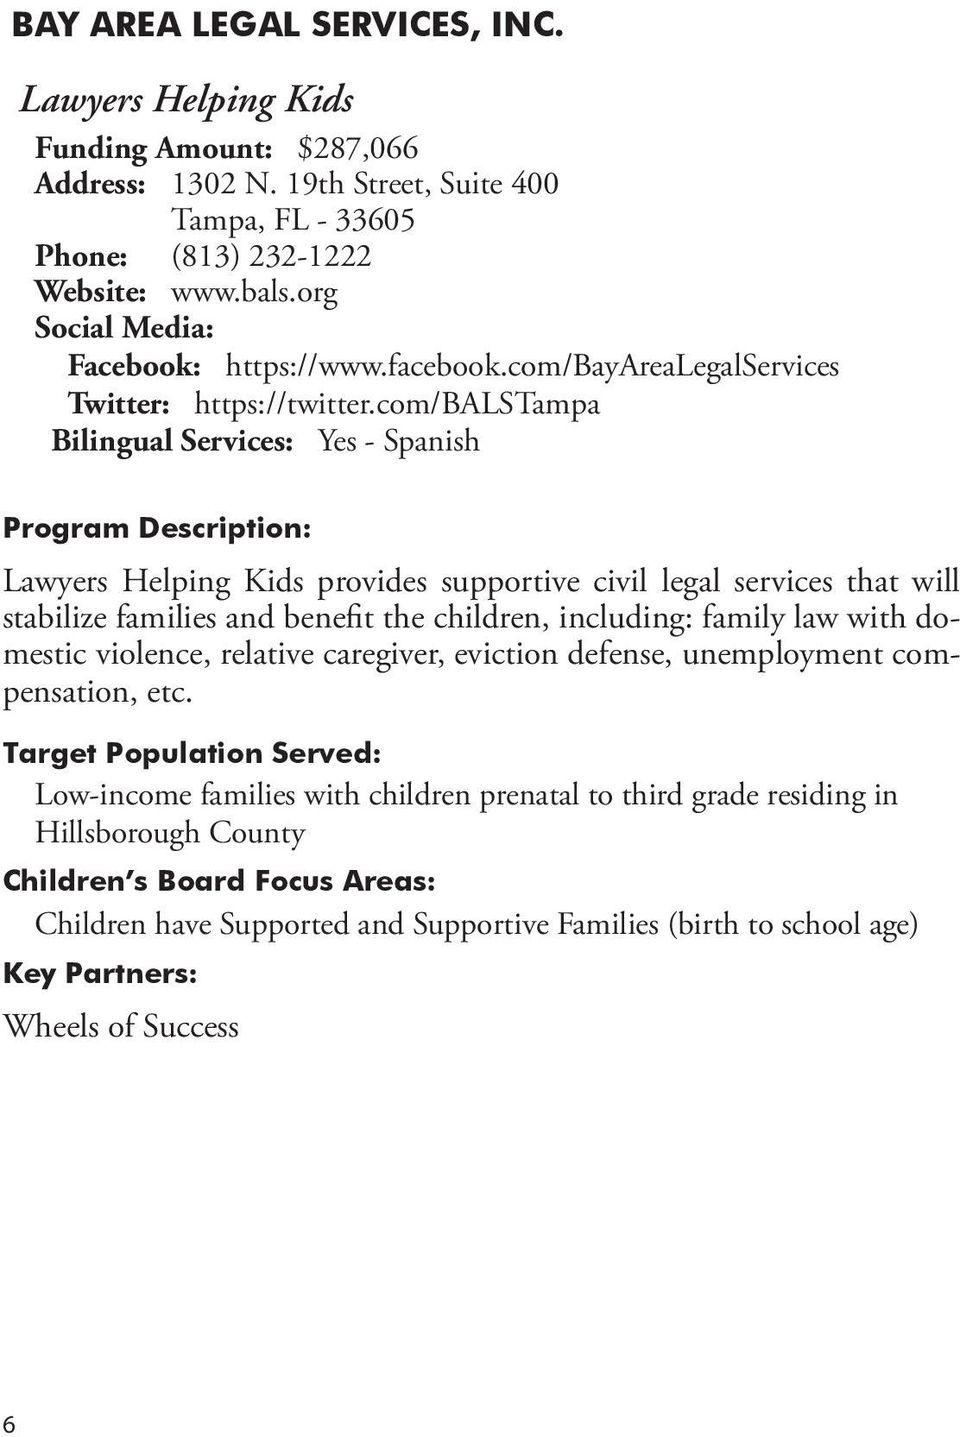 com/balstampa Lawyers Helping Kids provides supportive civil legal services that will stabilize families and benefit the children, including: family law with domestic